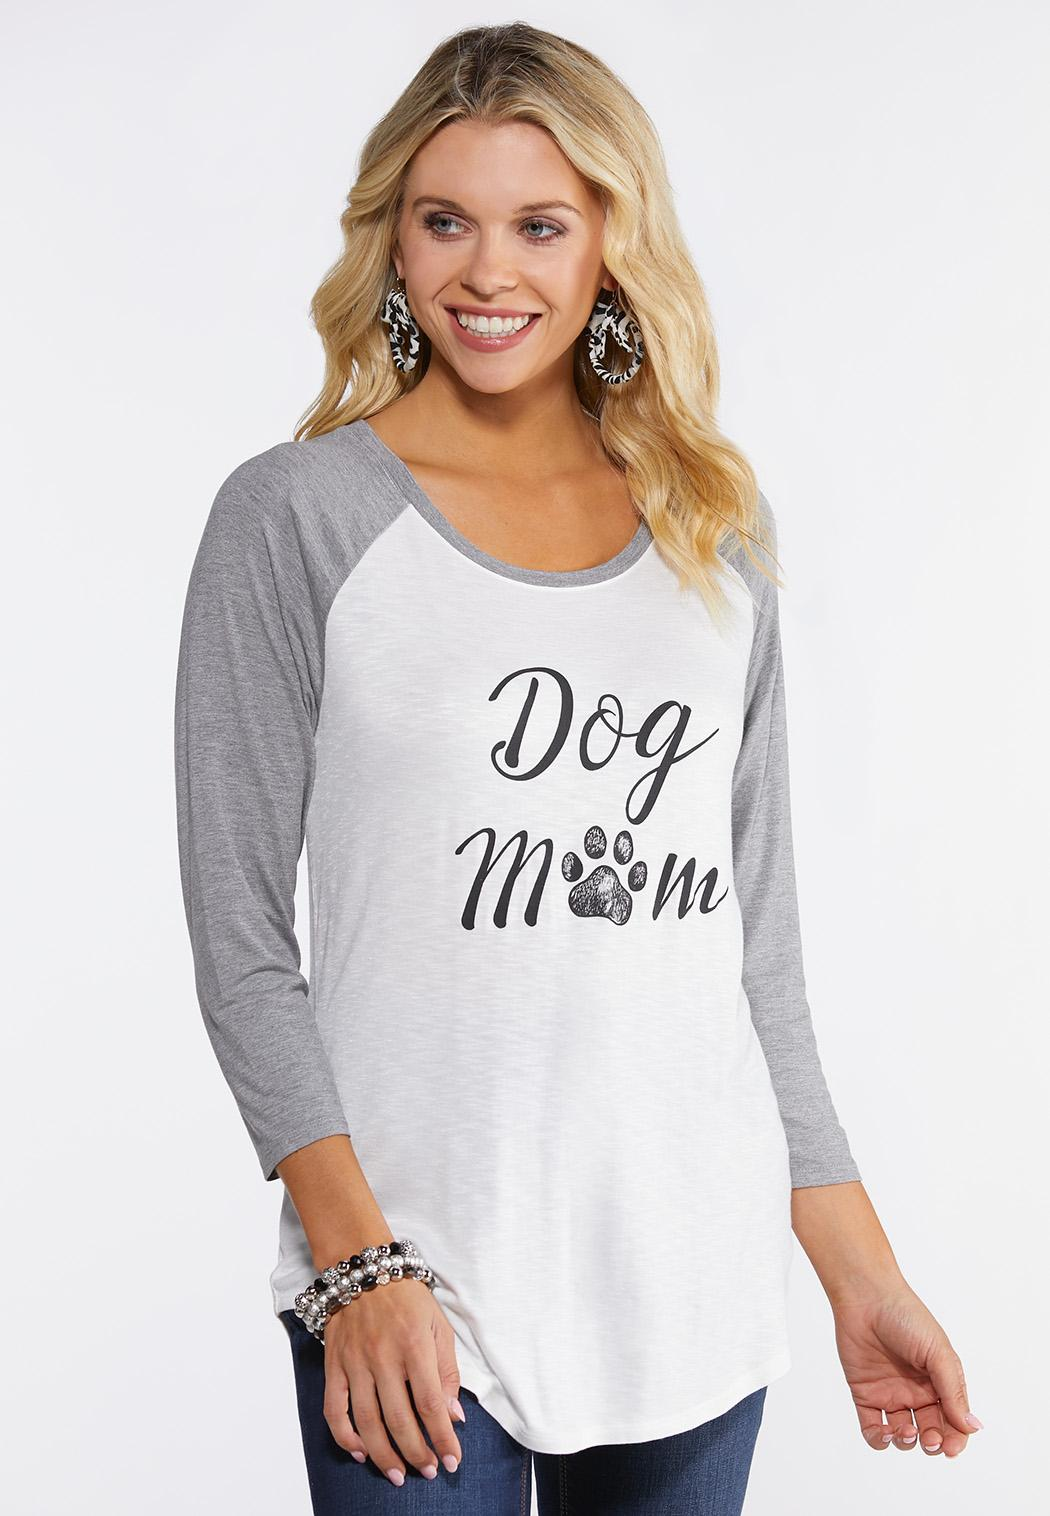 Dog Mom Graphic Top